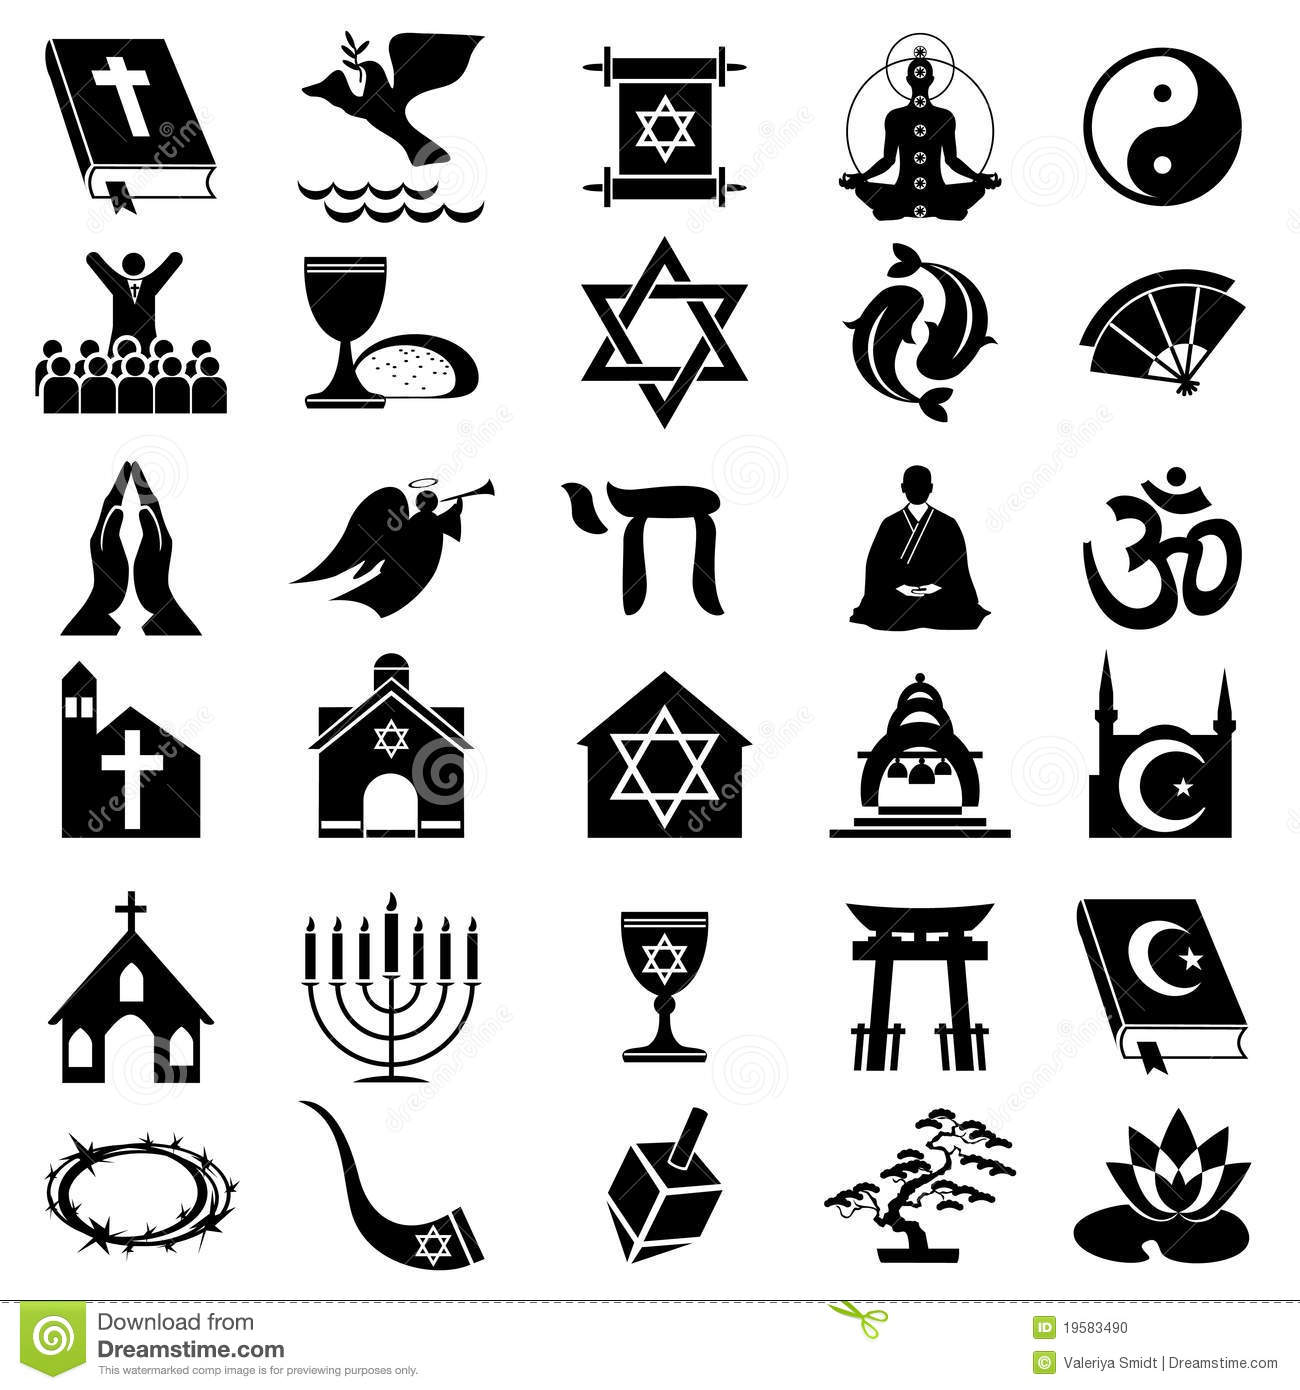 Religious symbols and meanings images symbol and sign ideas islamic religious symbols and their meanings symbol of islamlamic religious symbols and their meanings buycottarizona buycottarizona